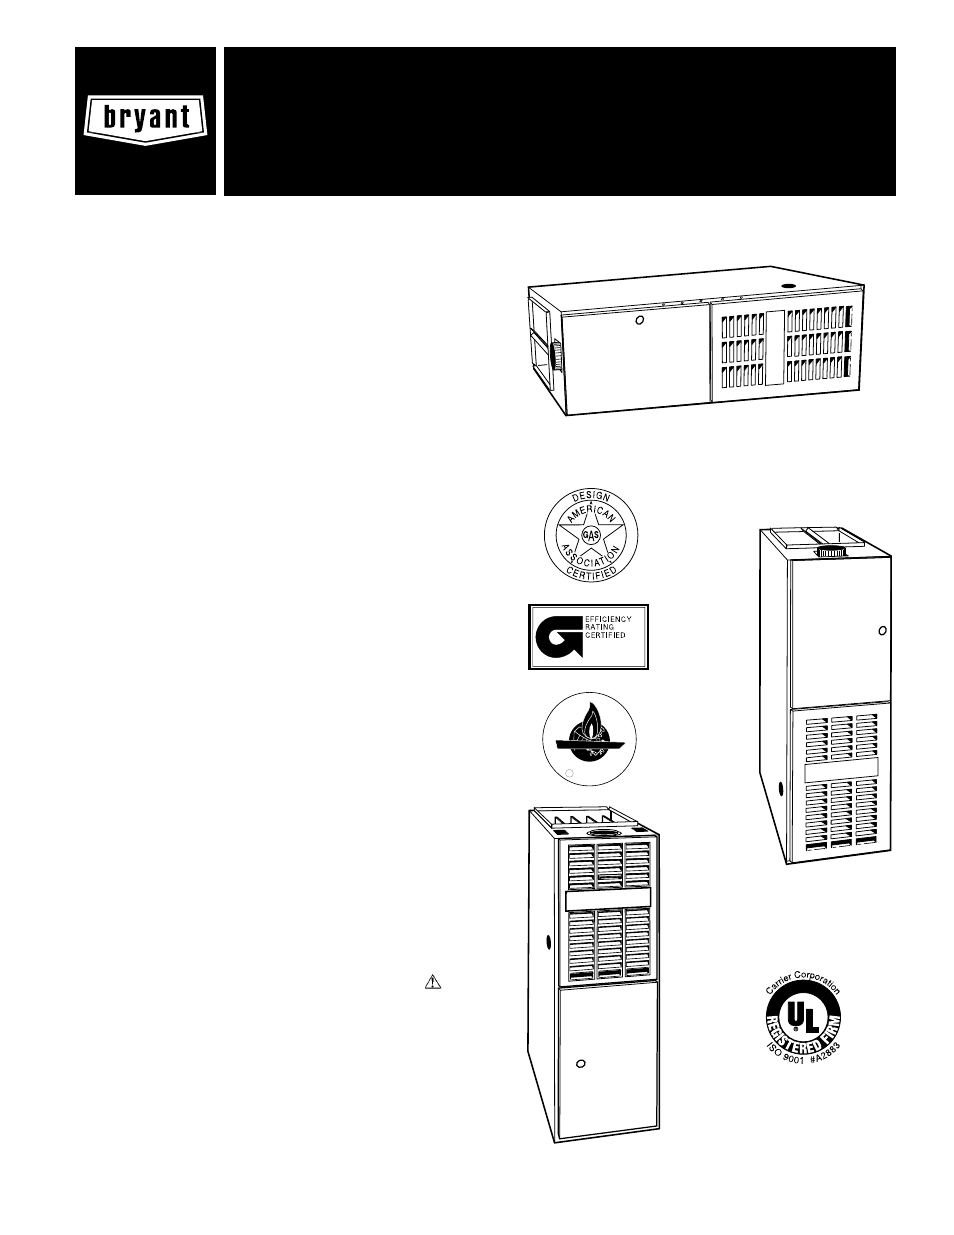 Diagram Bryant Thermostat Model 548f036 Wiring Diagram Manual